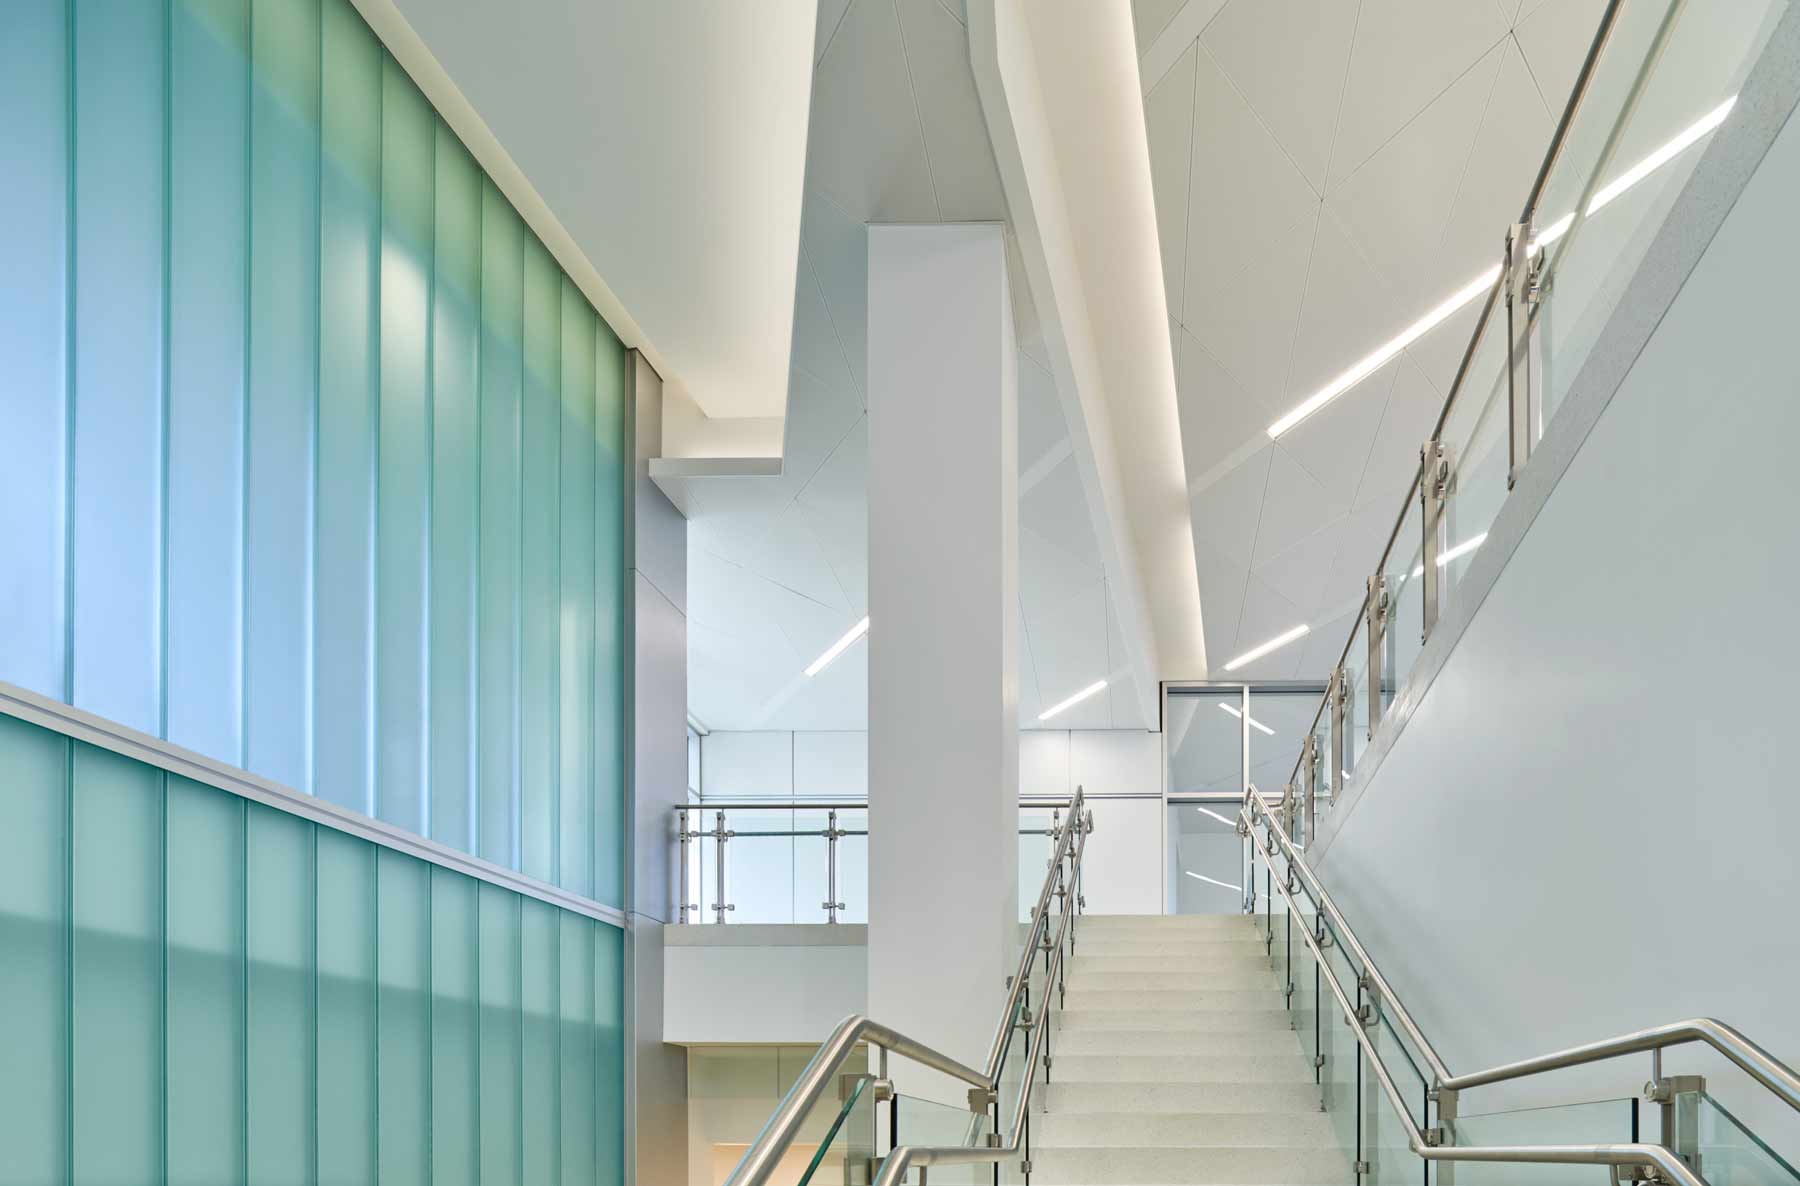 Cladding Corp Rutgers University Chemistry and Biology Laboratory Terra5 Swisspearl